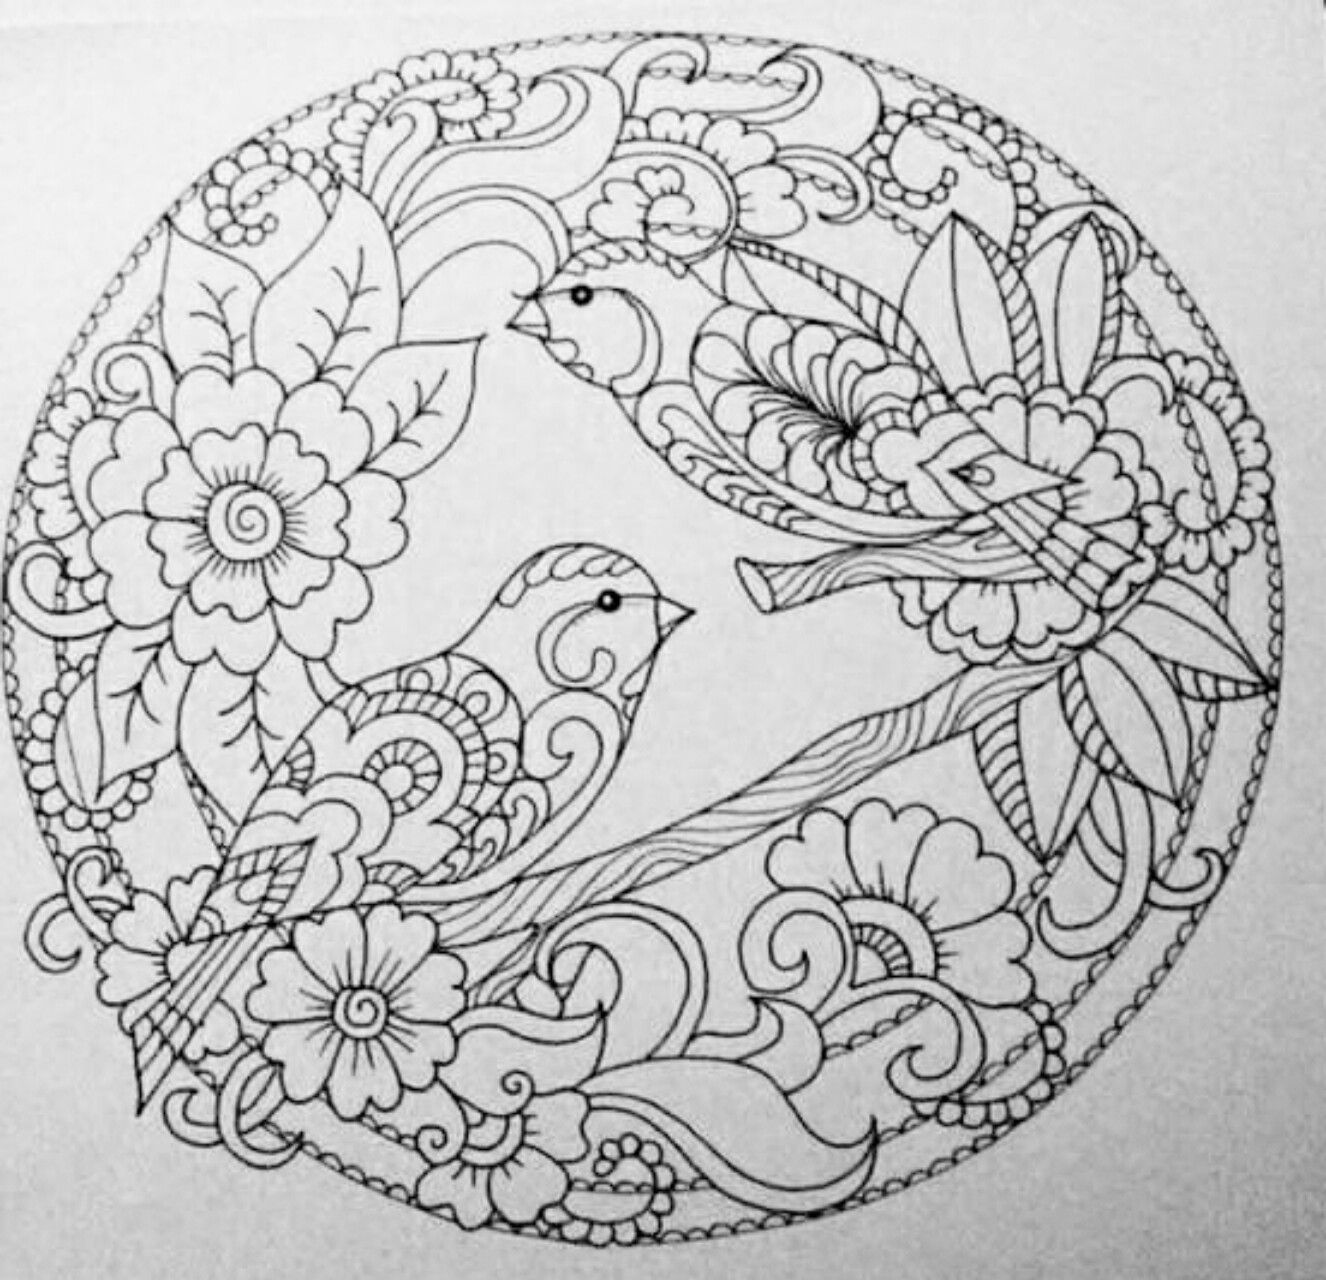 Birds In Circle Coloring Page Bird Coloring Pages Coloring Book Art Mandala Coloring Pages